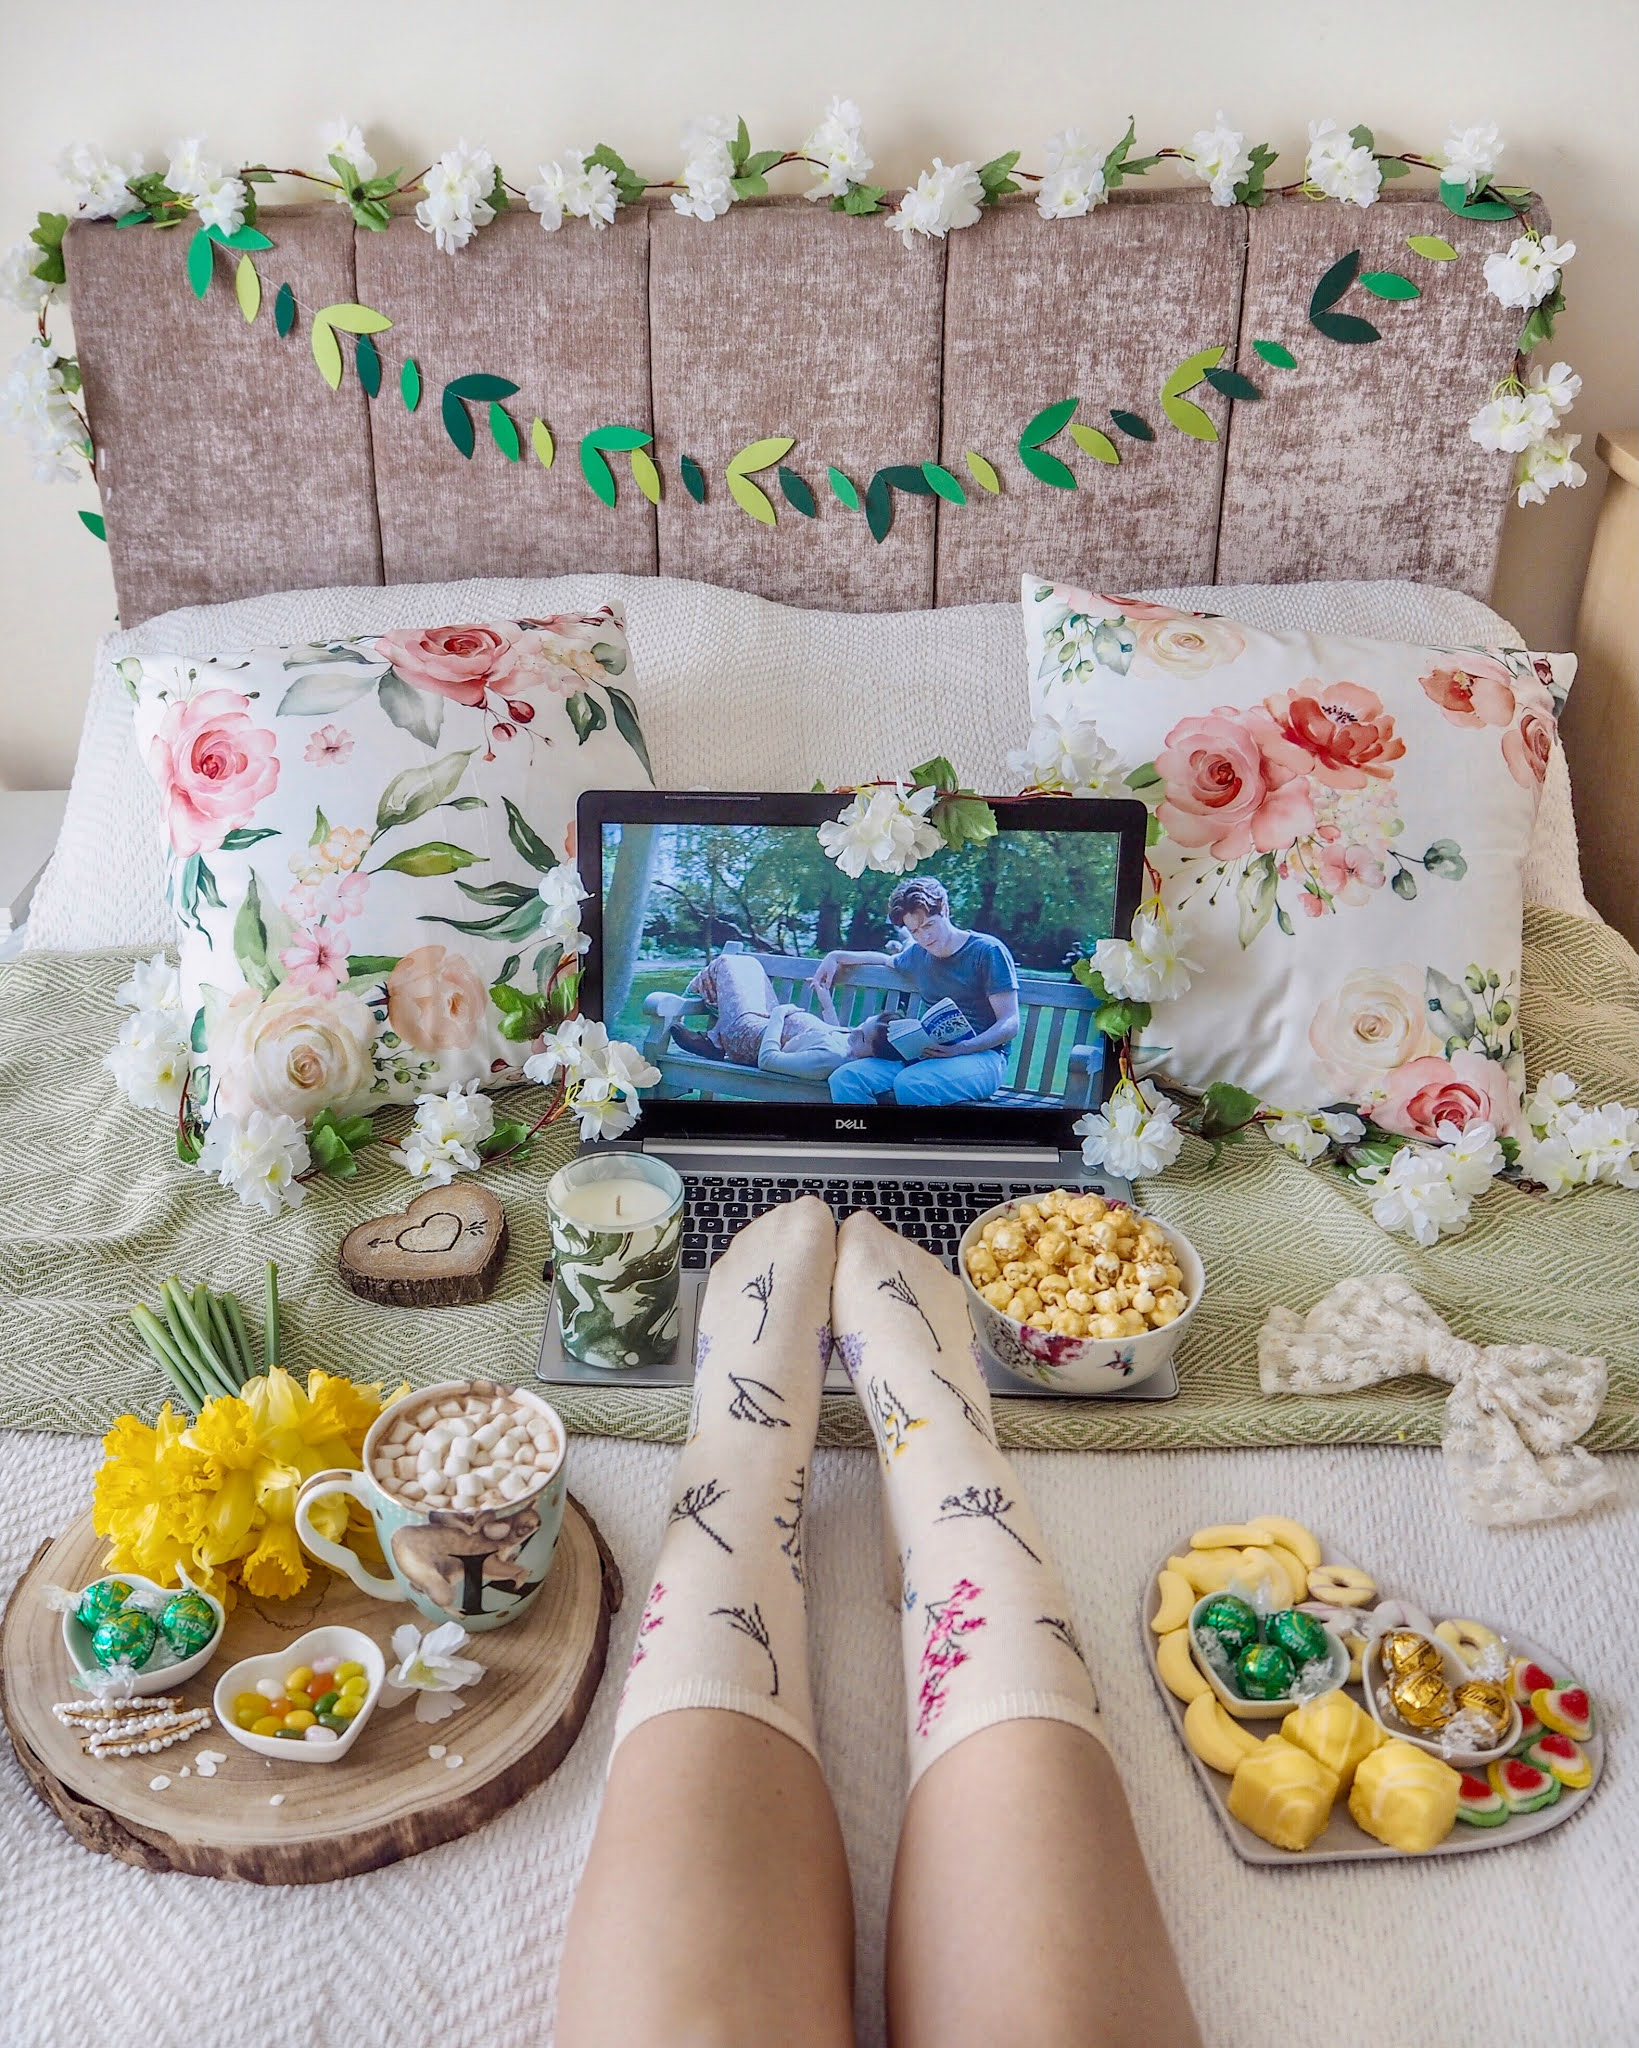 A cosy movie night shot watching Notting Hill on a laptop on a bed with lots of green and yellow floral spring props surrounding. You can see the girls legs on the bed wearing floral socks